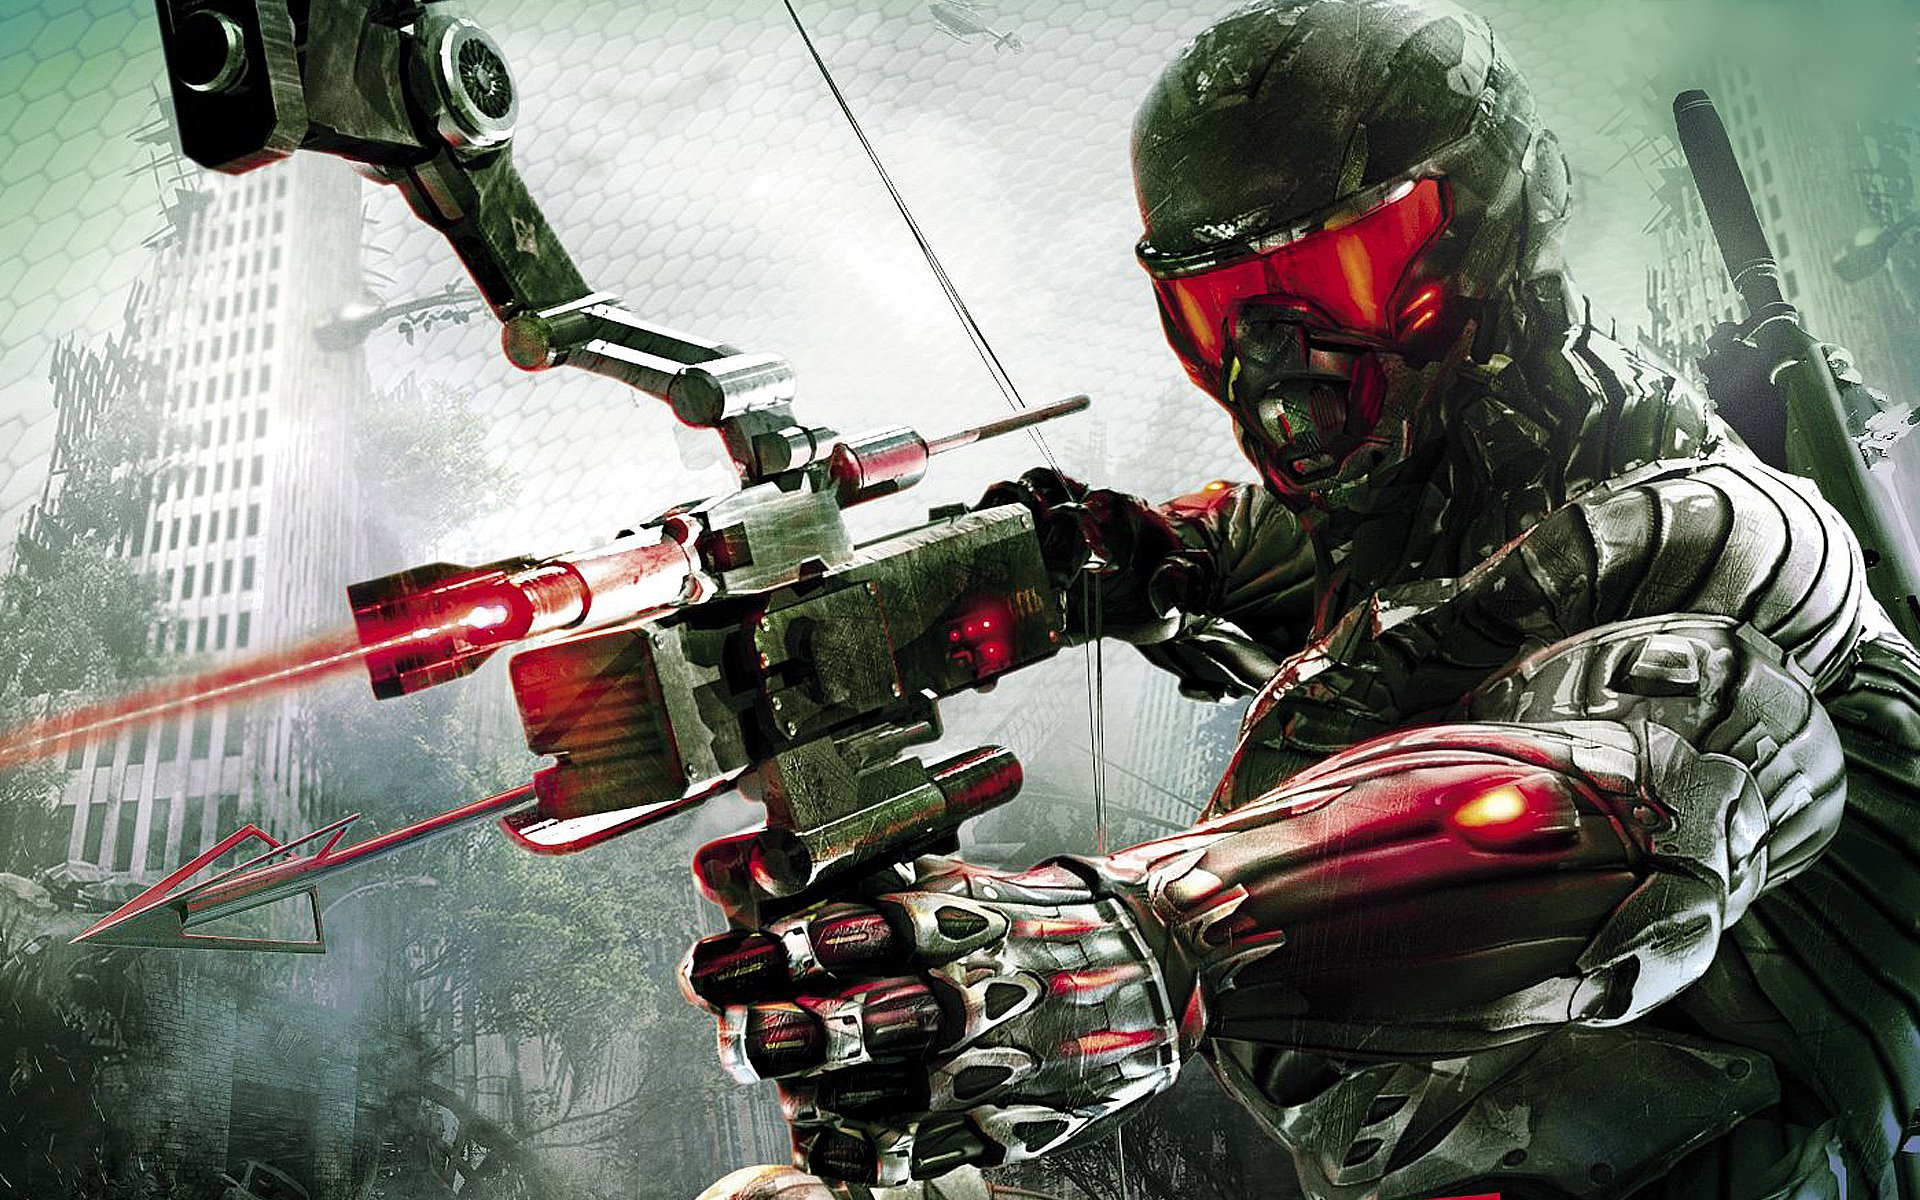 Crysis 3 HD Wallpaper | Background Image | 1920x1200 | ID:374320 - Wallpaper Abyss